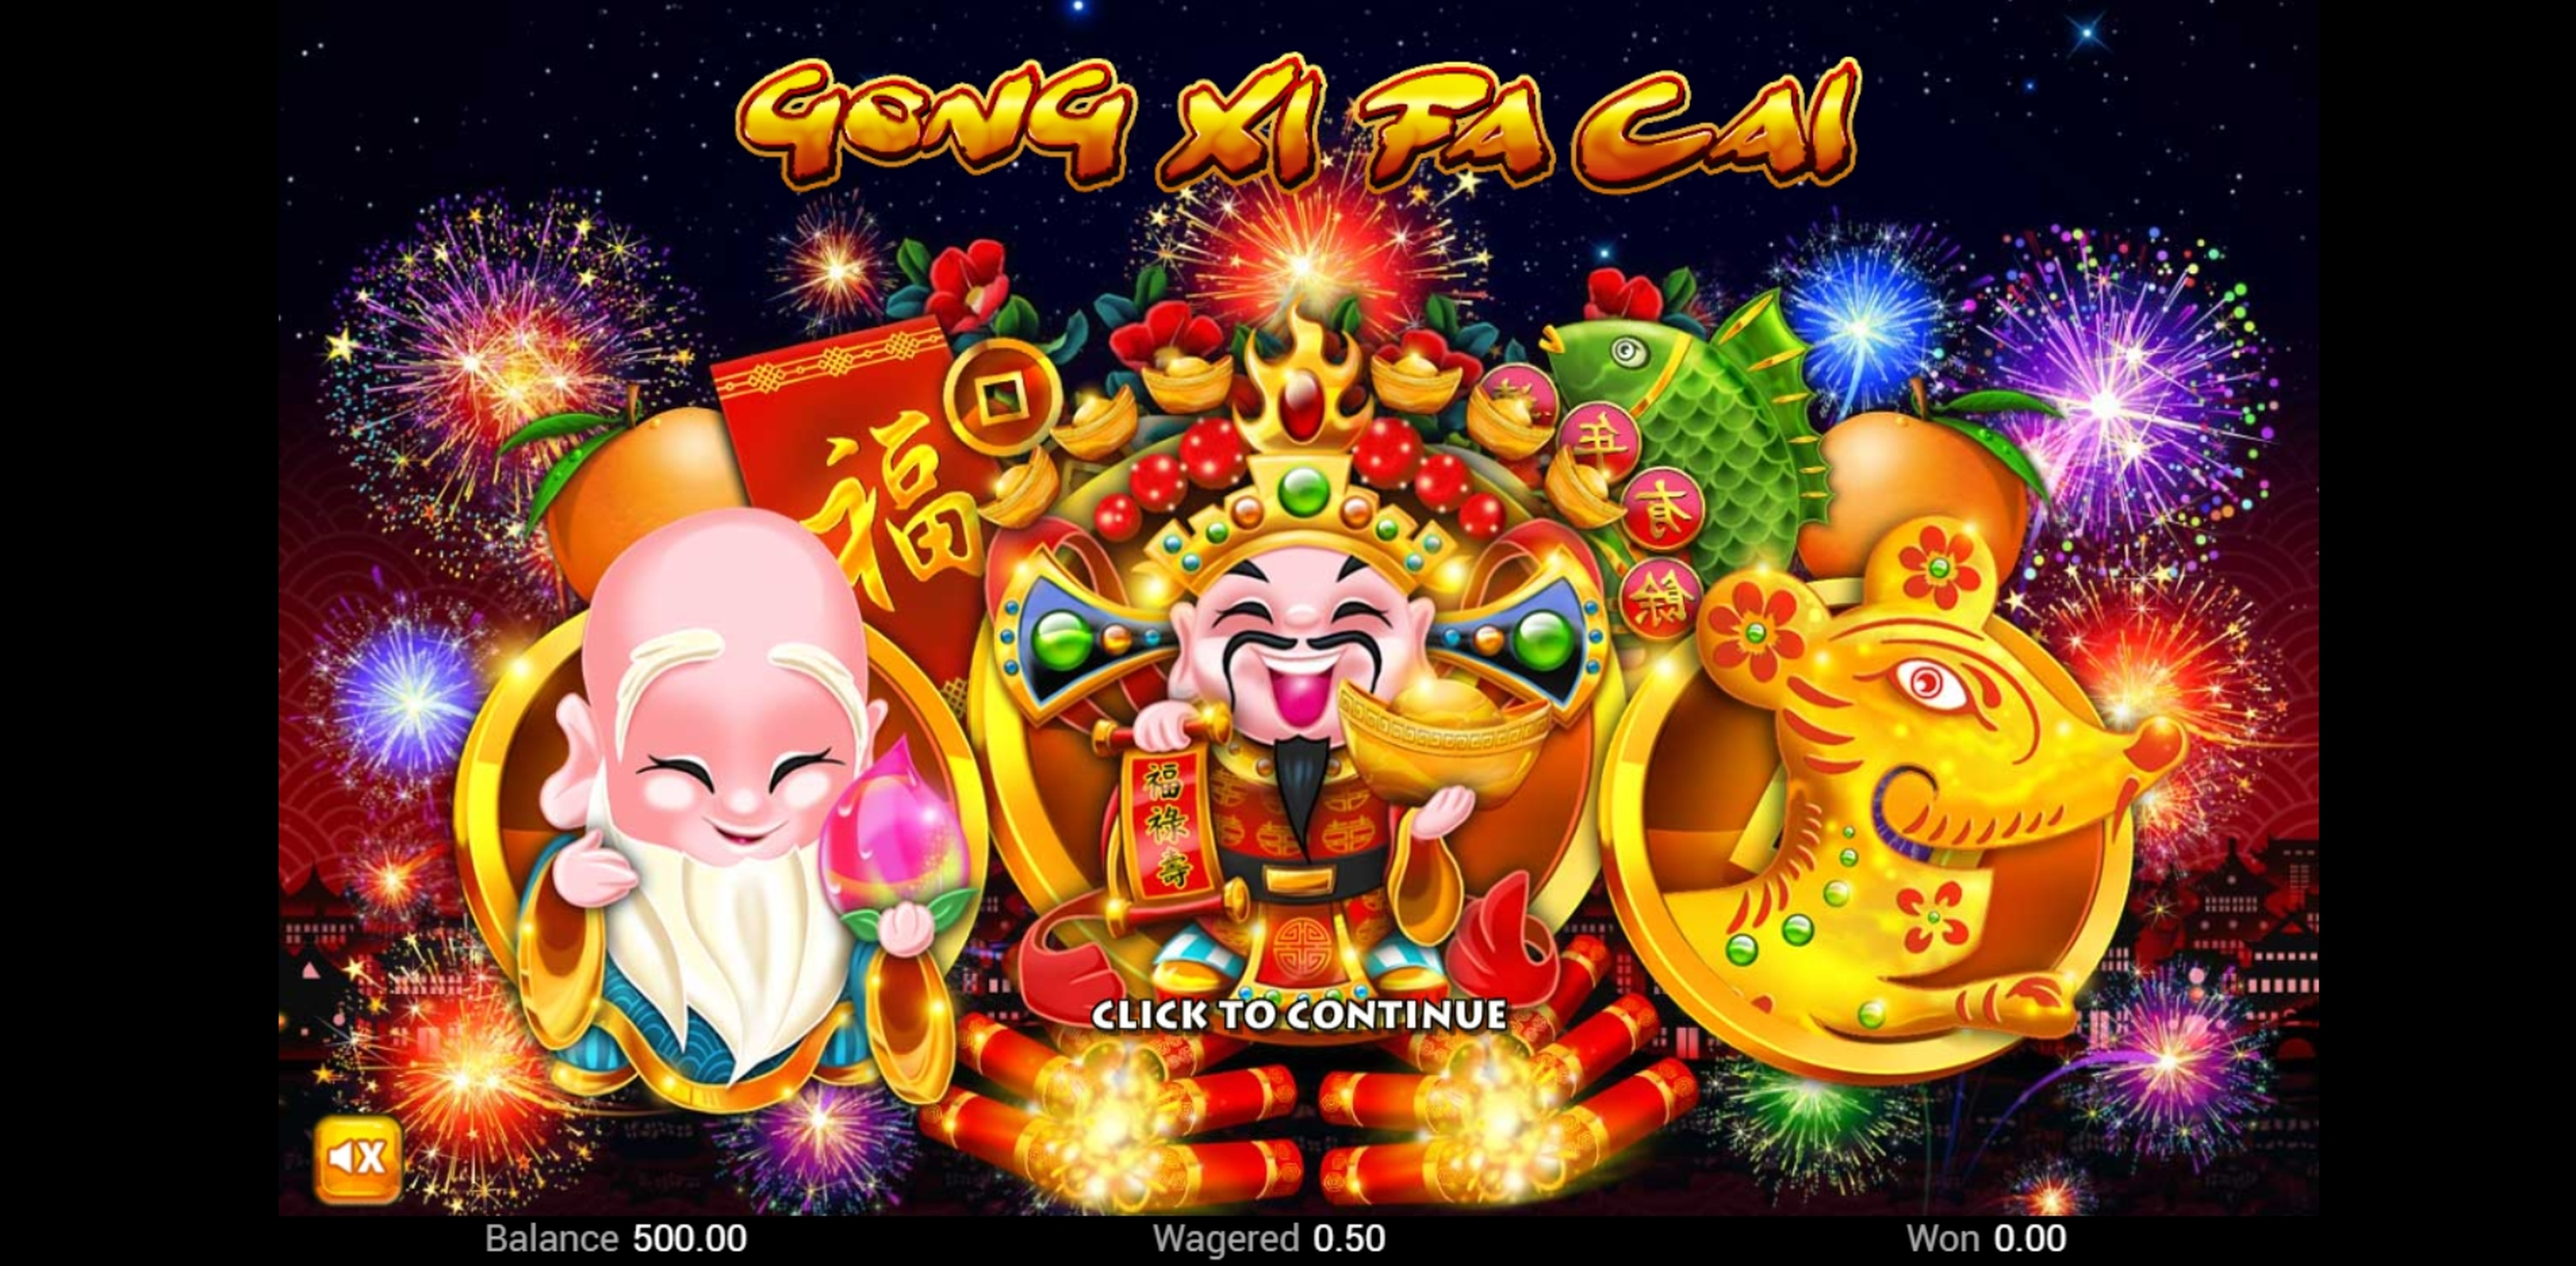 Play Gong Xi Fa Cai (TopTrendGaming) Free Casino Slot Game by Top Trend Gaming